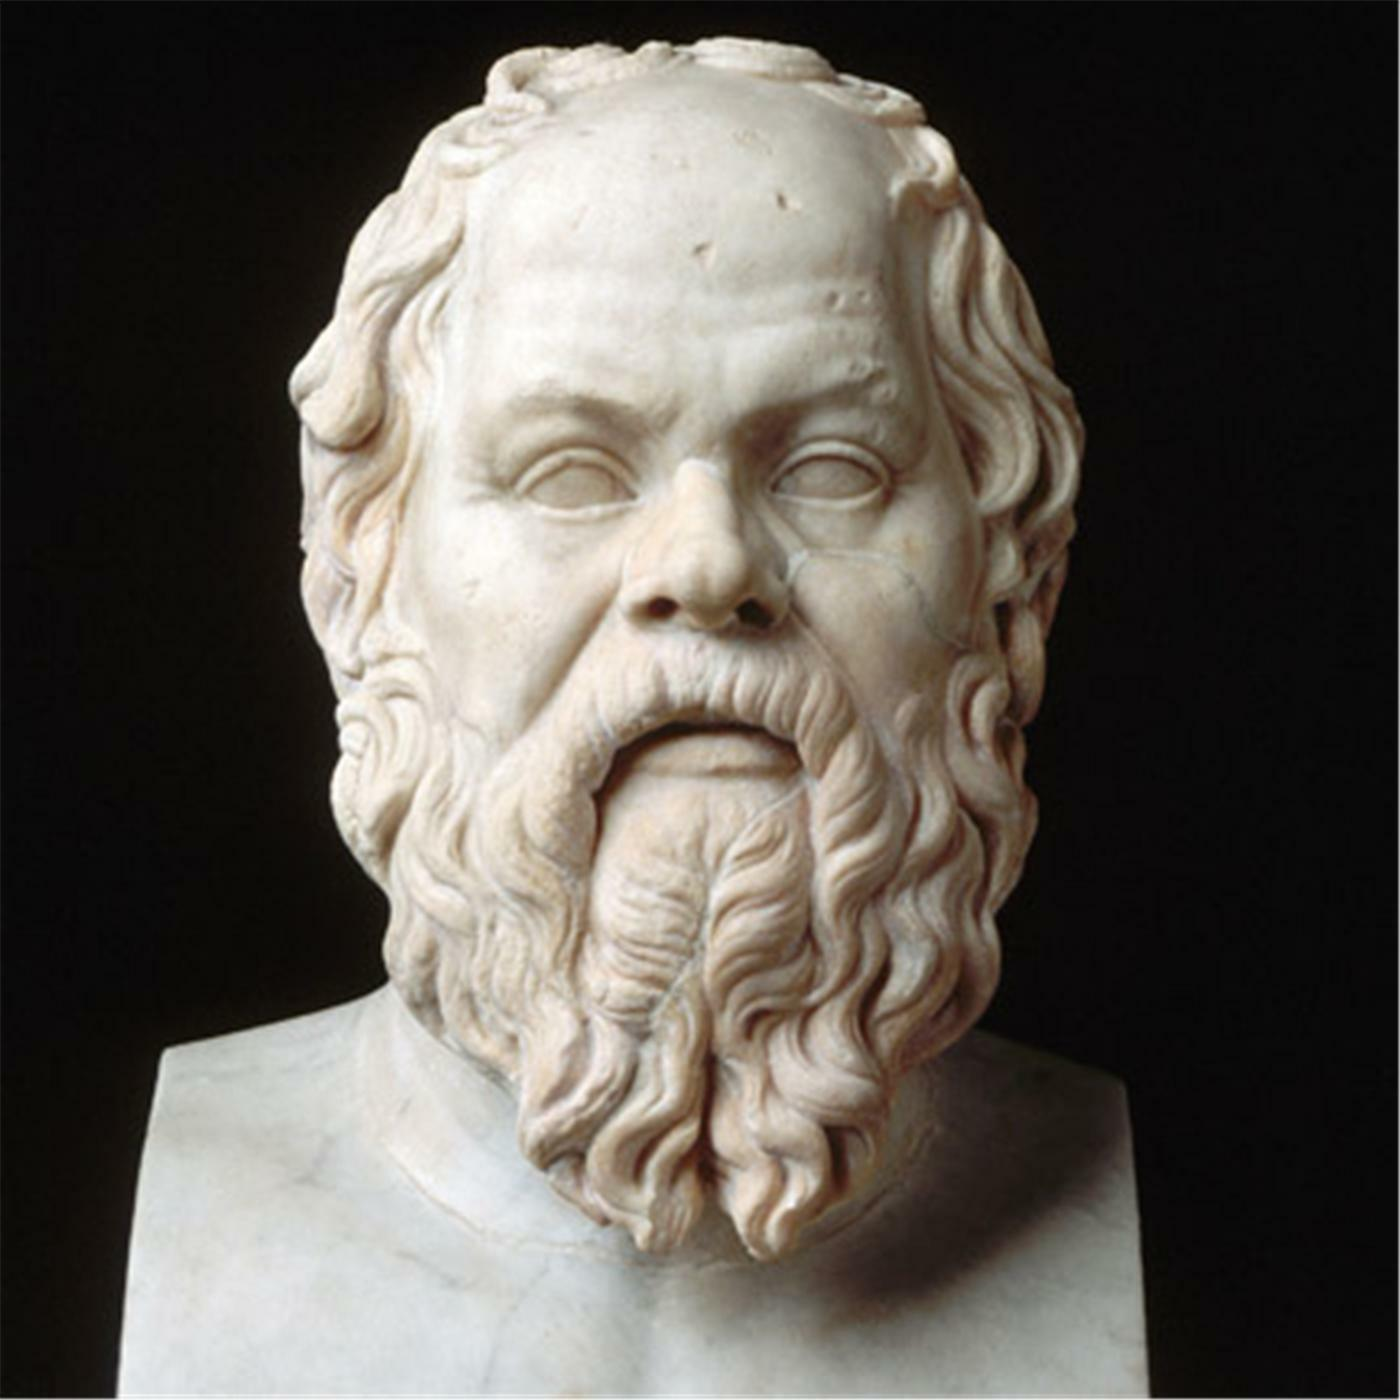 Listen Free to Socratic Dialogues on iHeartRadio Podcasts | iHeartRadio